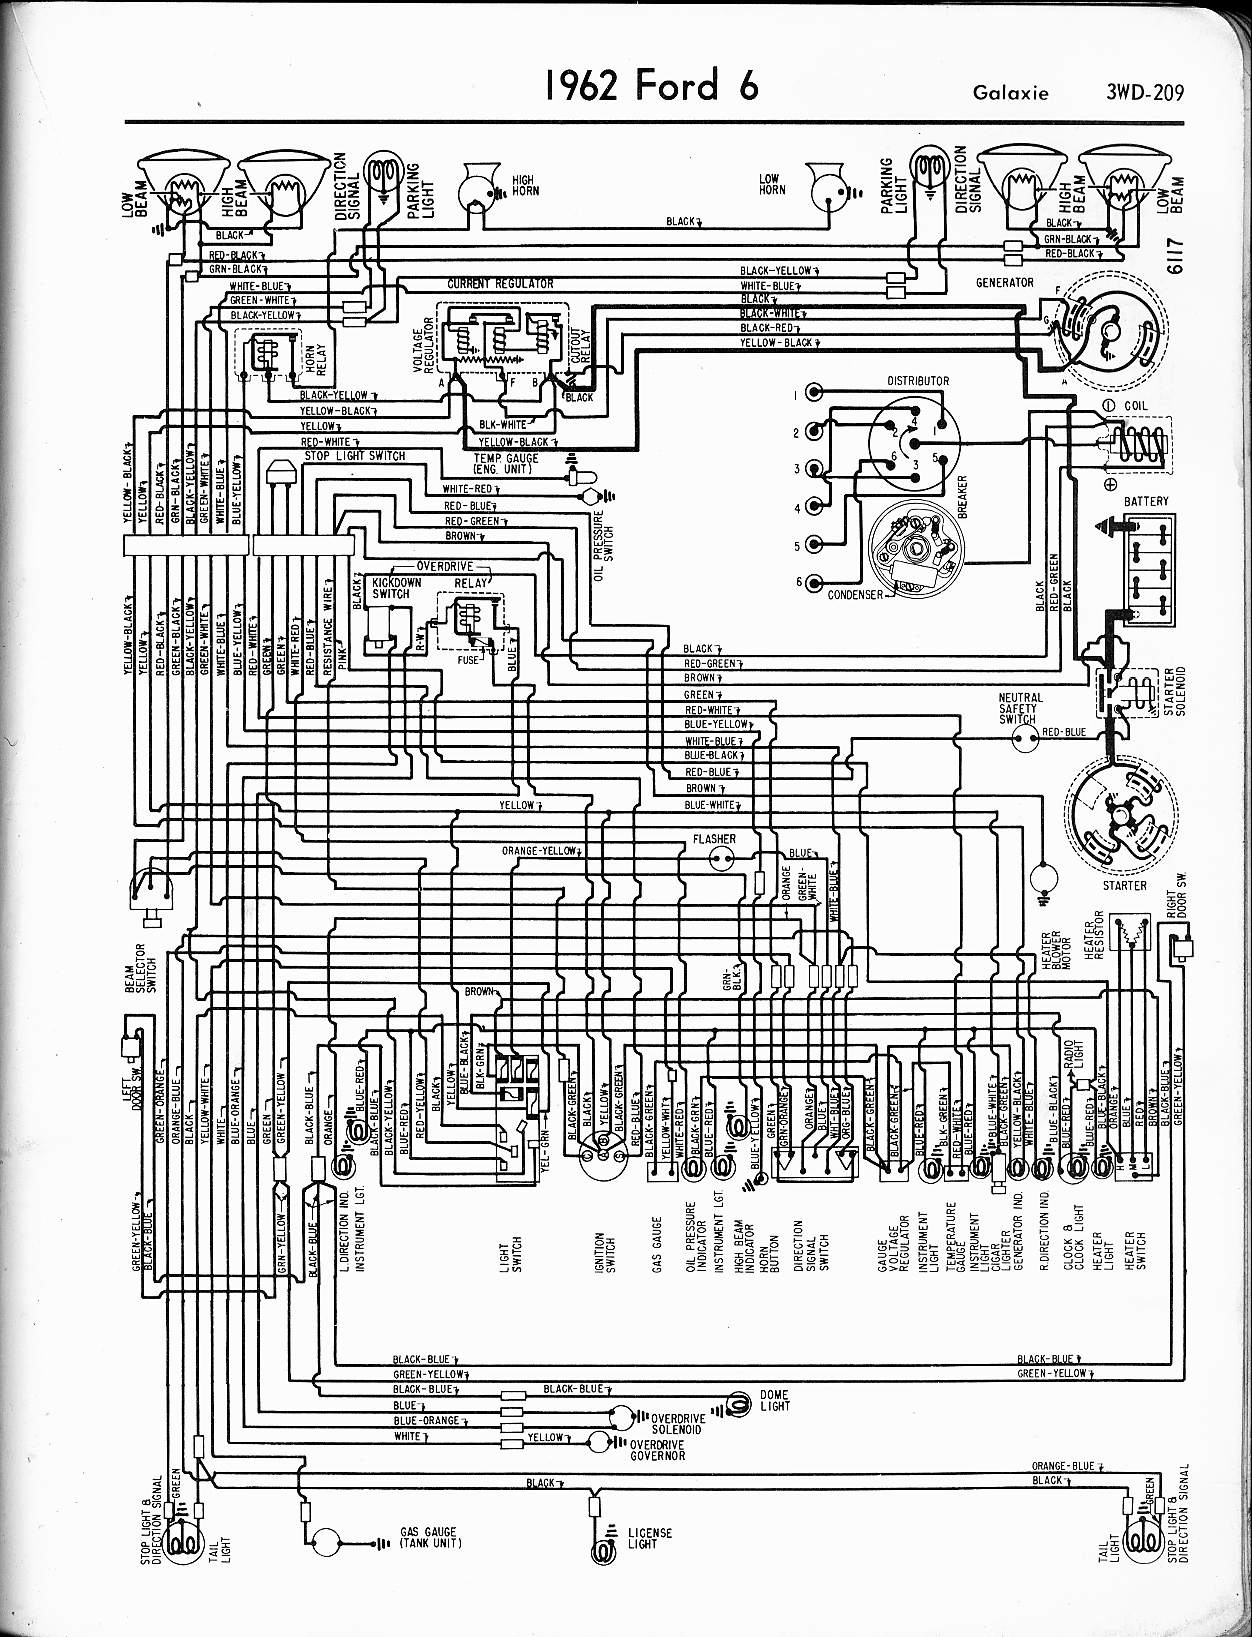 Ford Galaxie Cluster Wiring Diagram Will Be A Thing 1966 Mustang 57 65 Diagrams Rh Oldcarmanualproject Com Ignition Switch